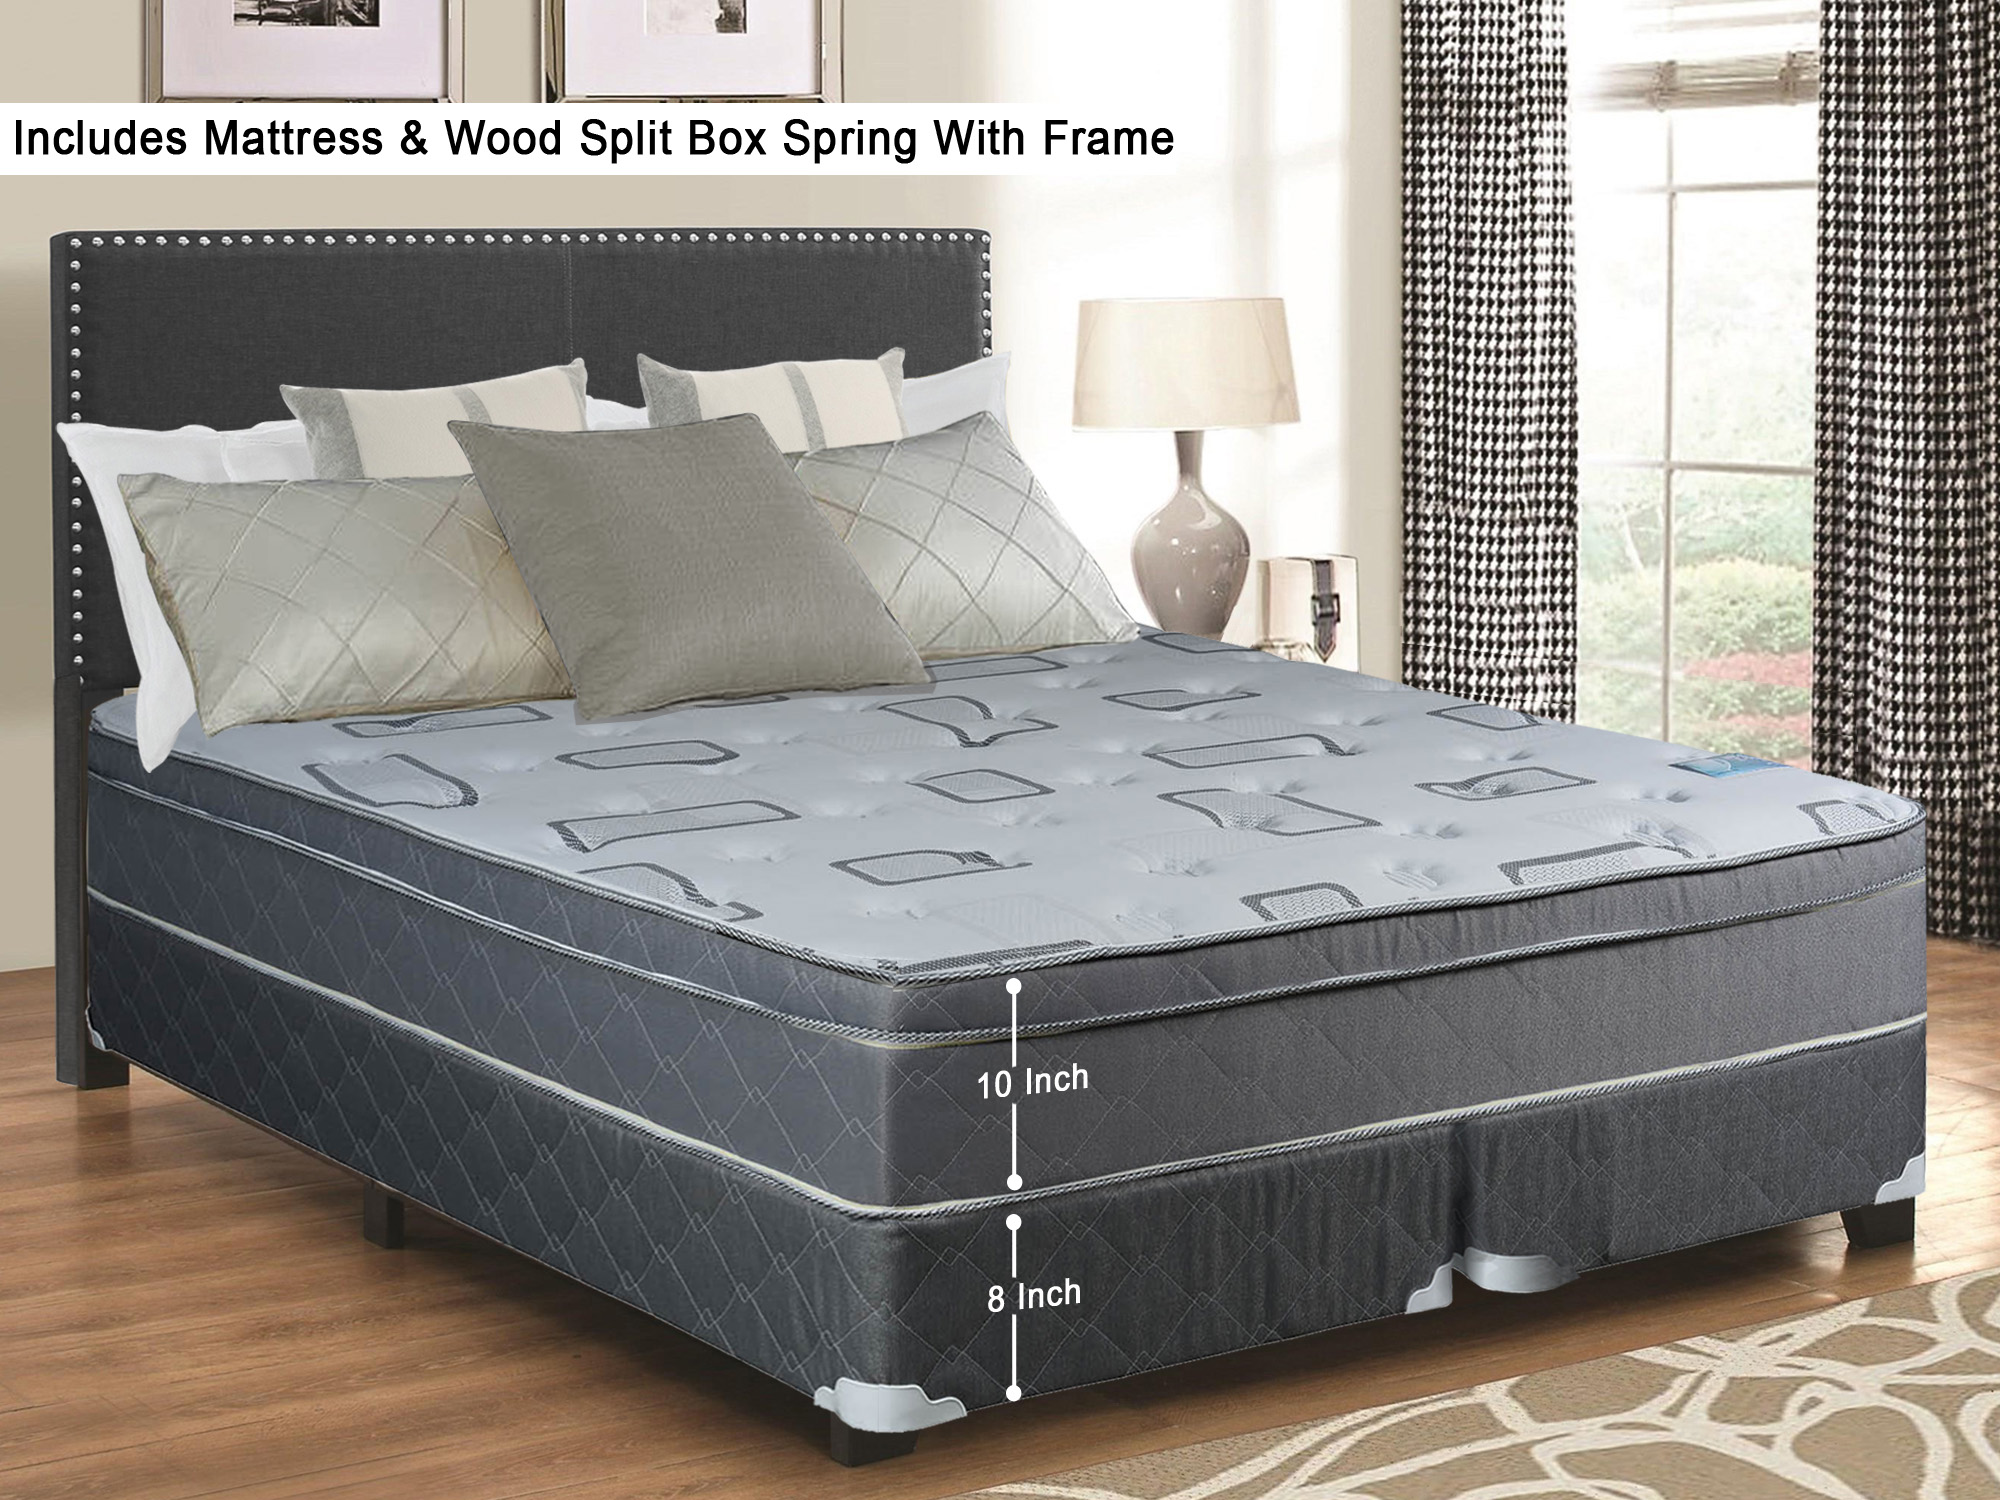 Twin Size 74 x 38 10-Inch Meduim Firm Foam Encased Hybrid Eurotop Pillowtop Innerspring Mattress And Split Wood Traditional Box Spring//Foundation Set Continental Sleep